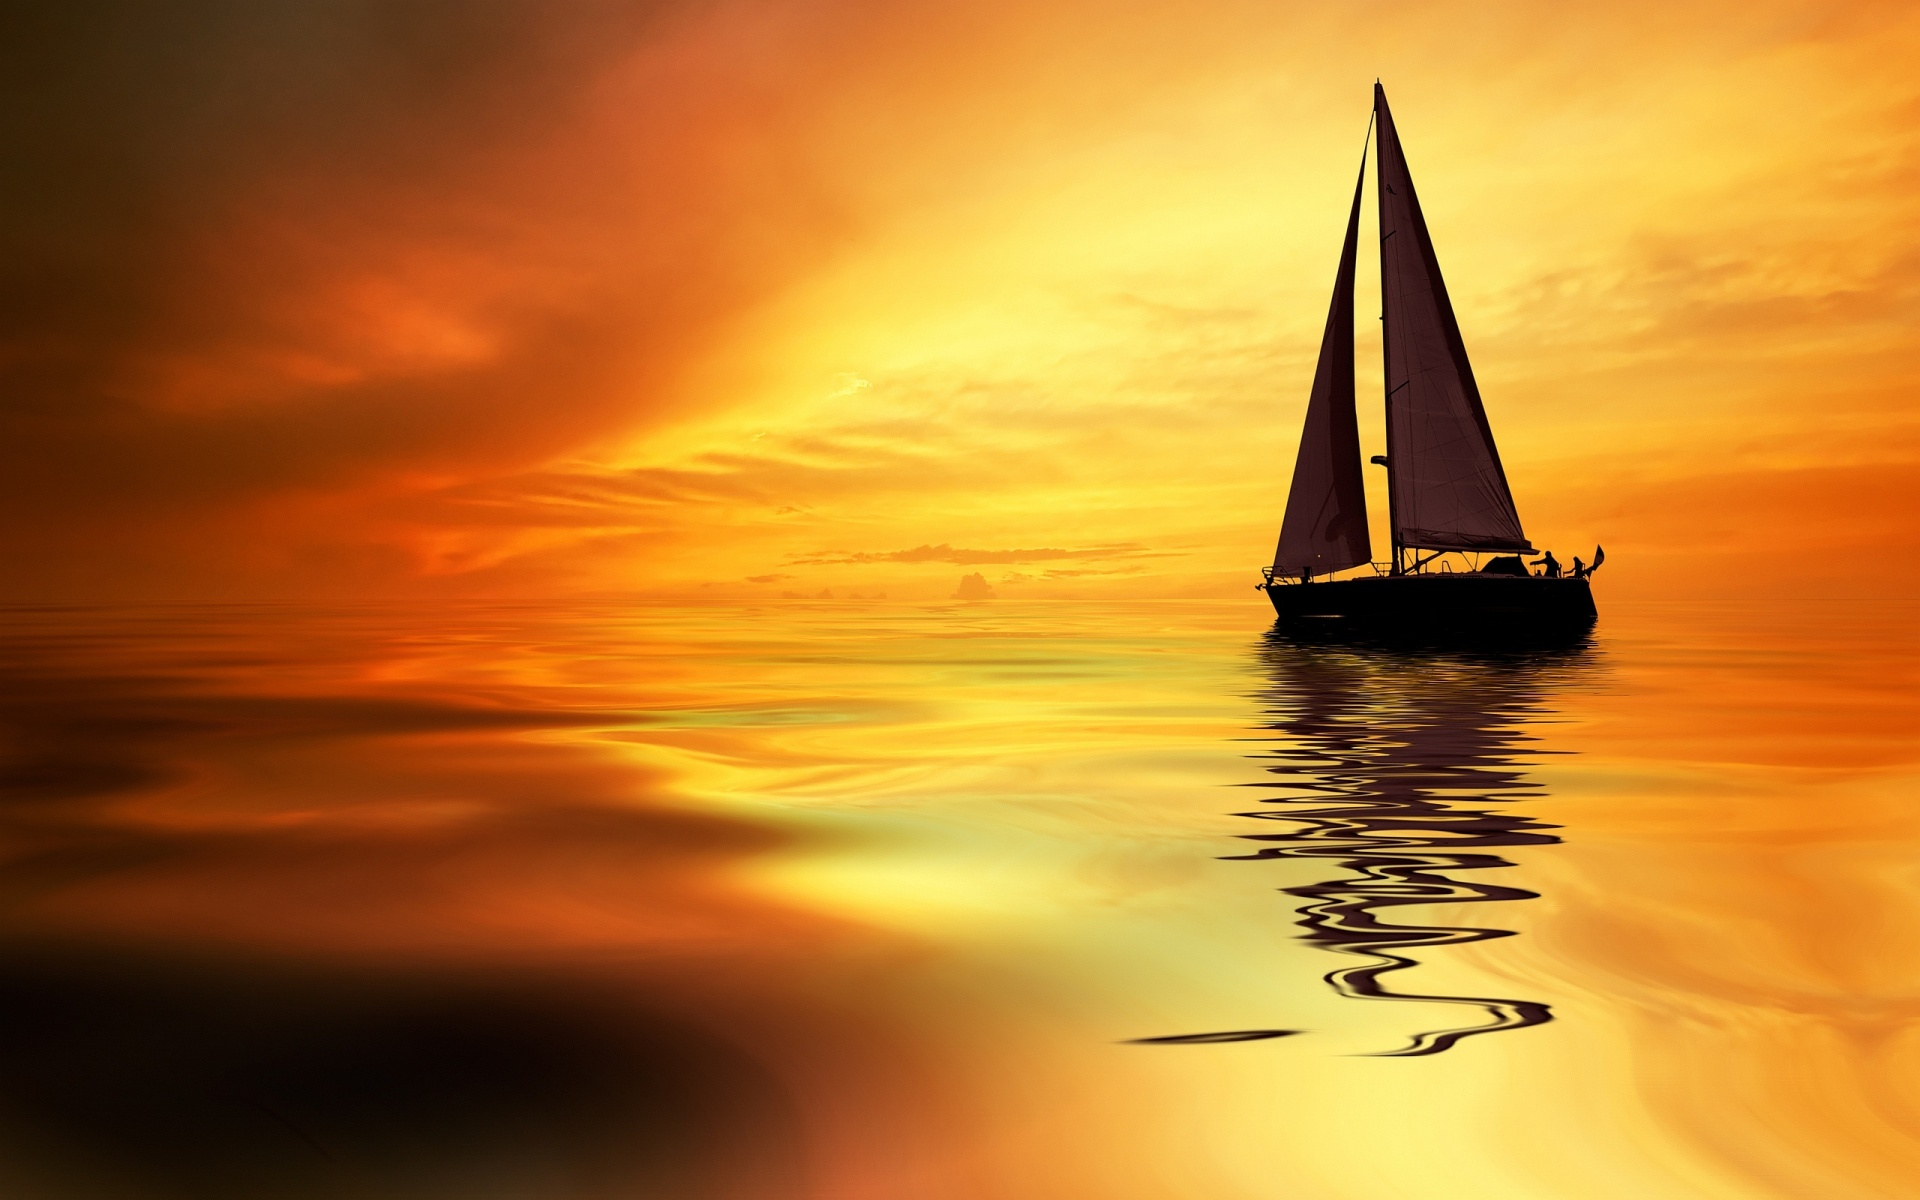 Beautiful-Sailboat-Sunset-wallpaper-wp3603142